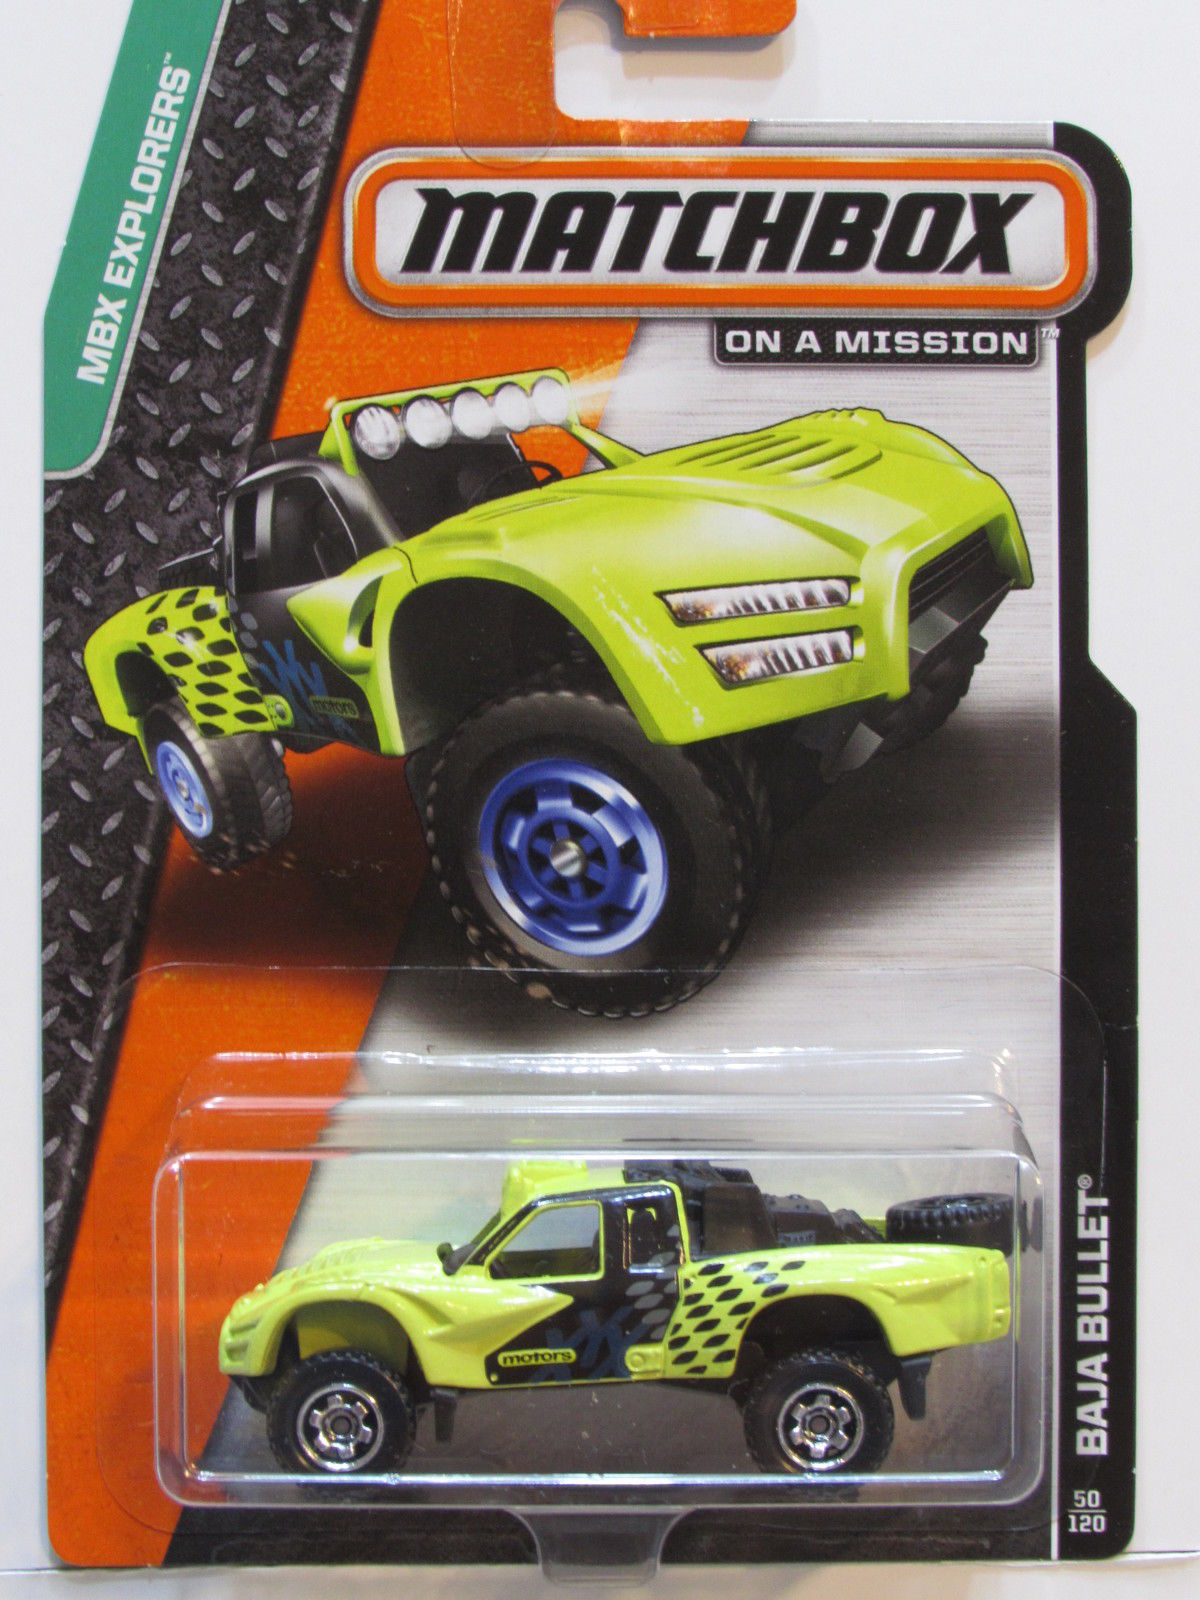 MATCHBOX 2014 ON A MISSION BAJA BULLET YELLOW